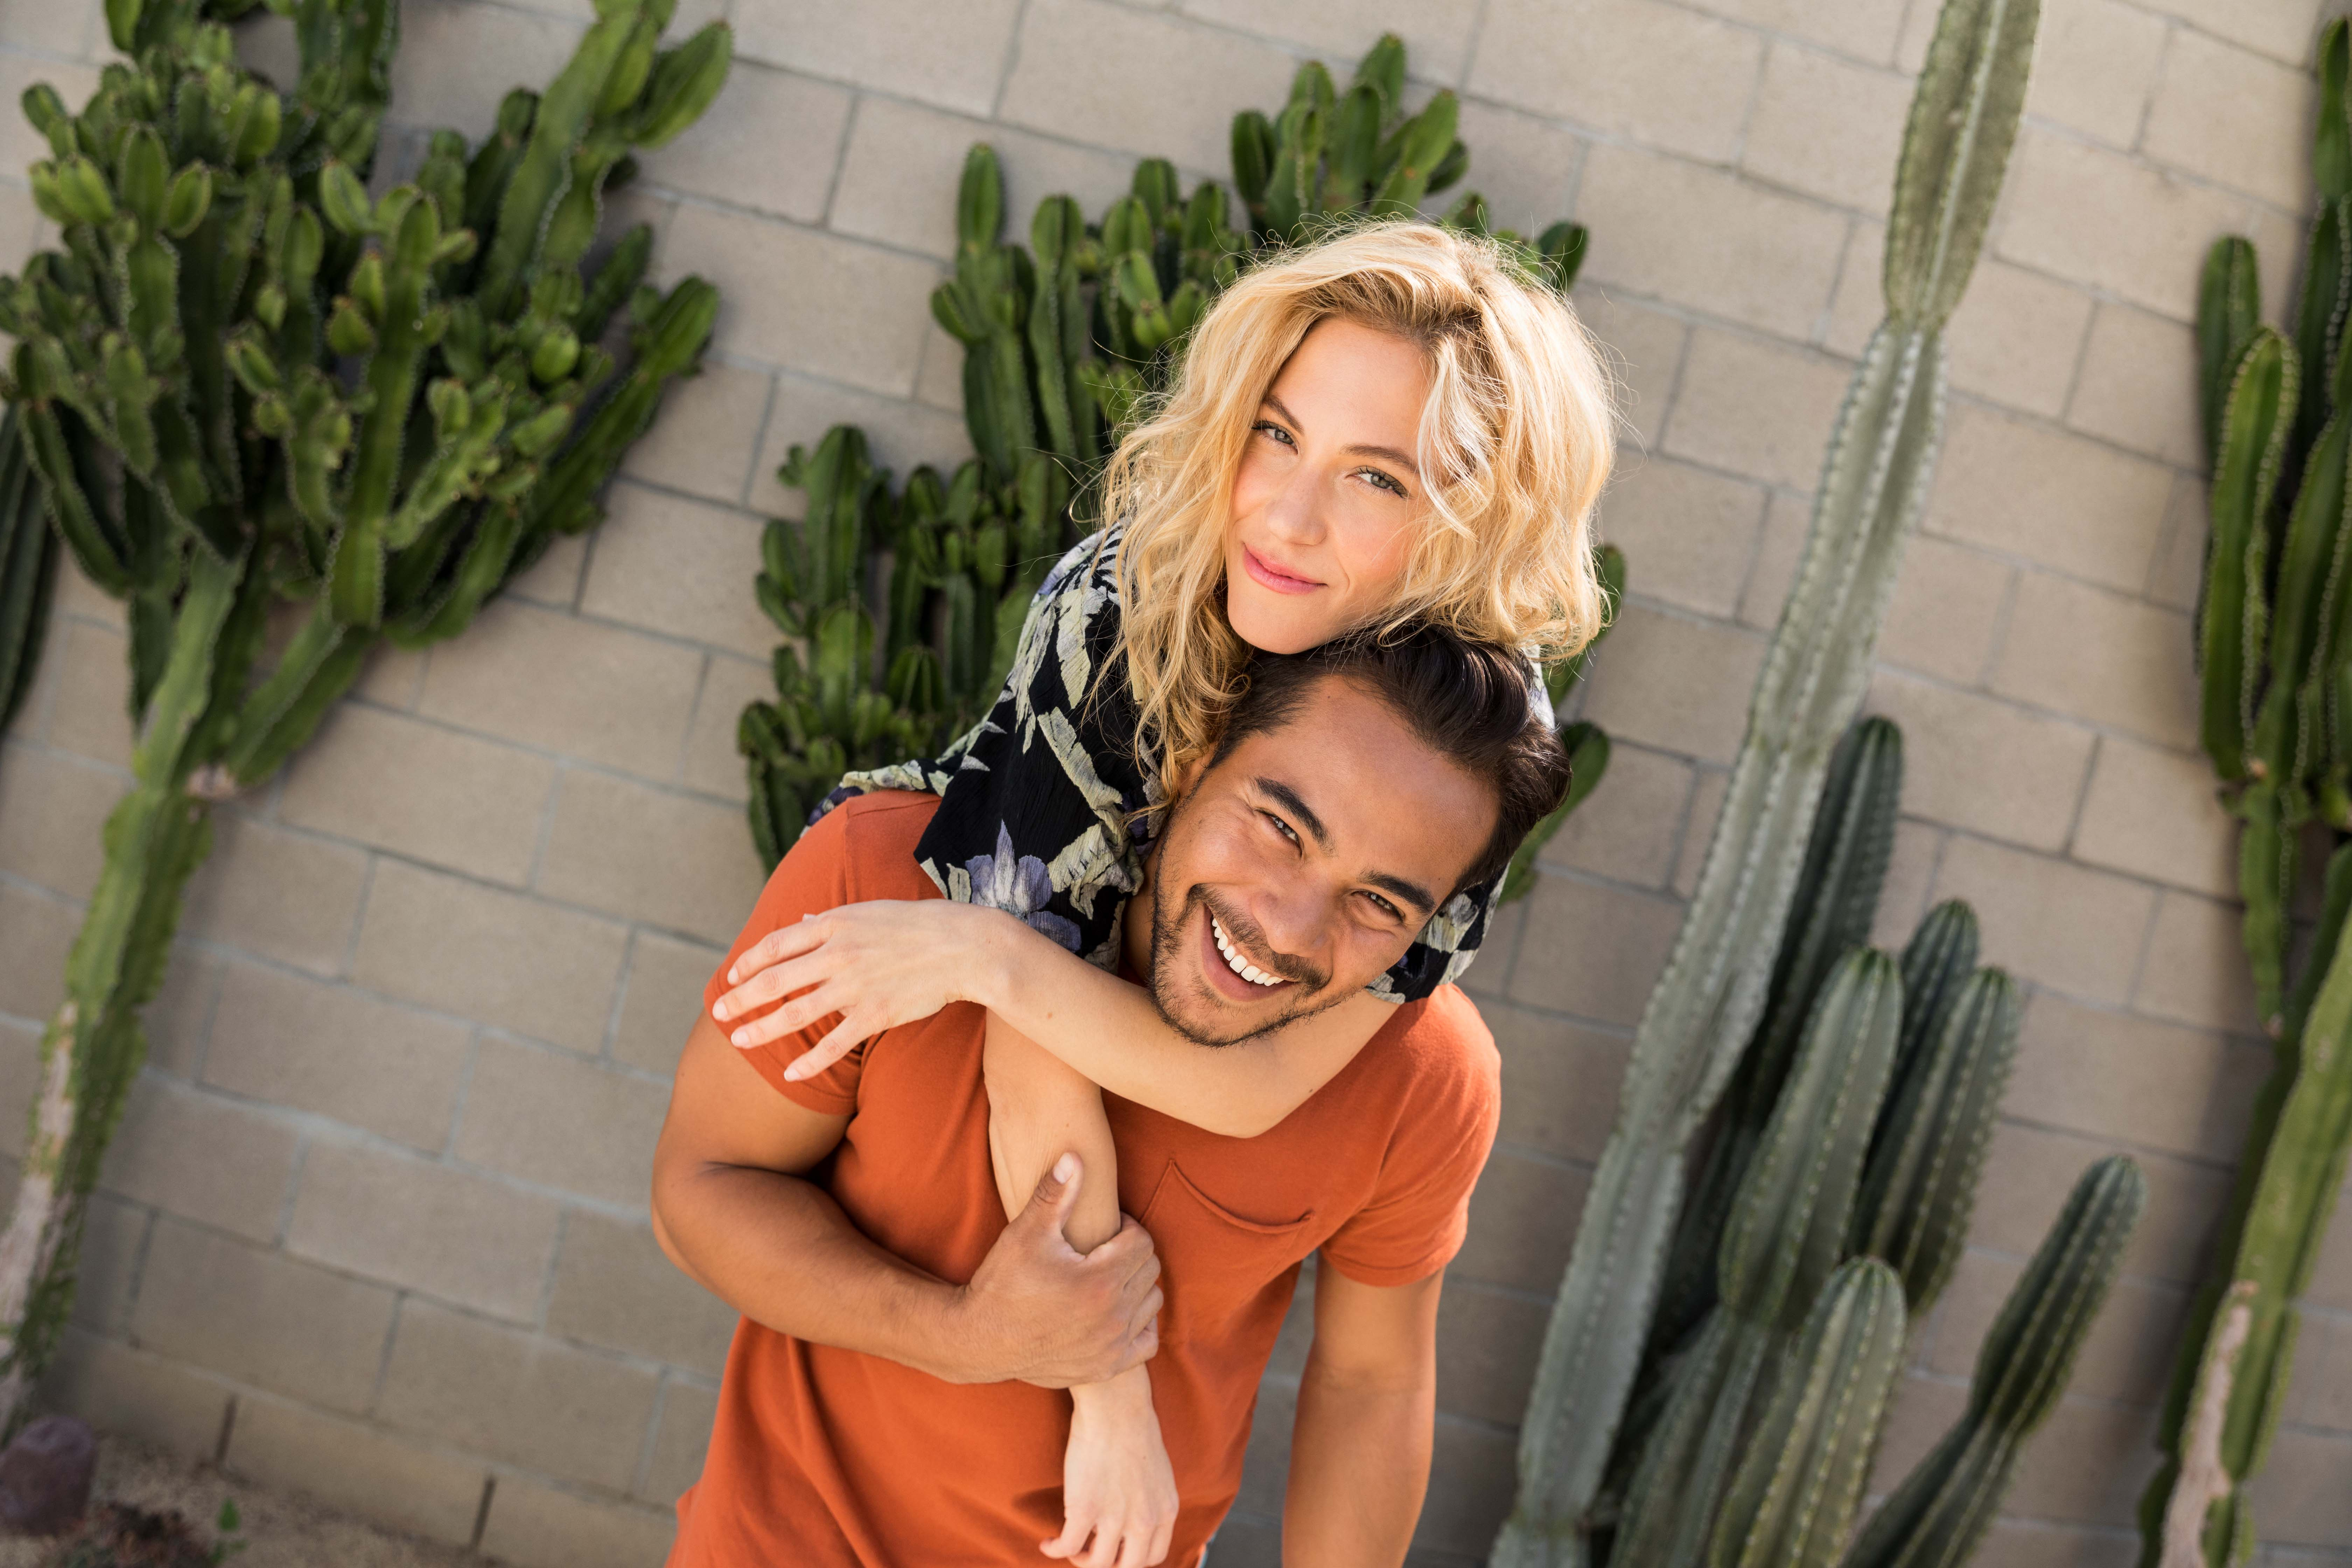 A couple posing in front of cactus.